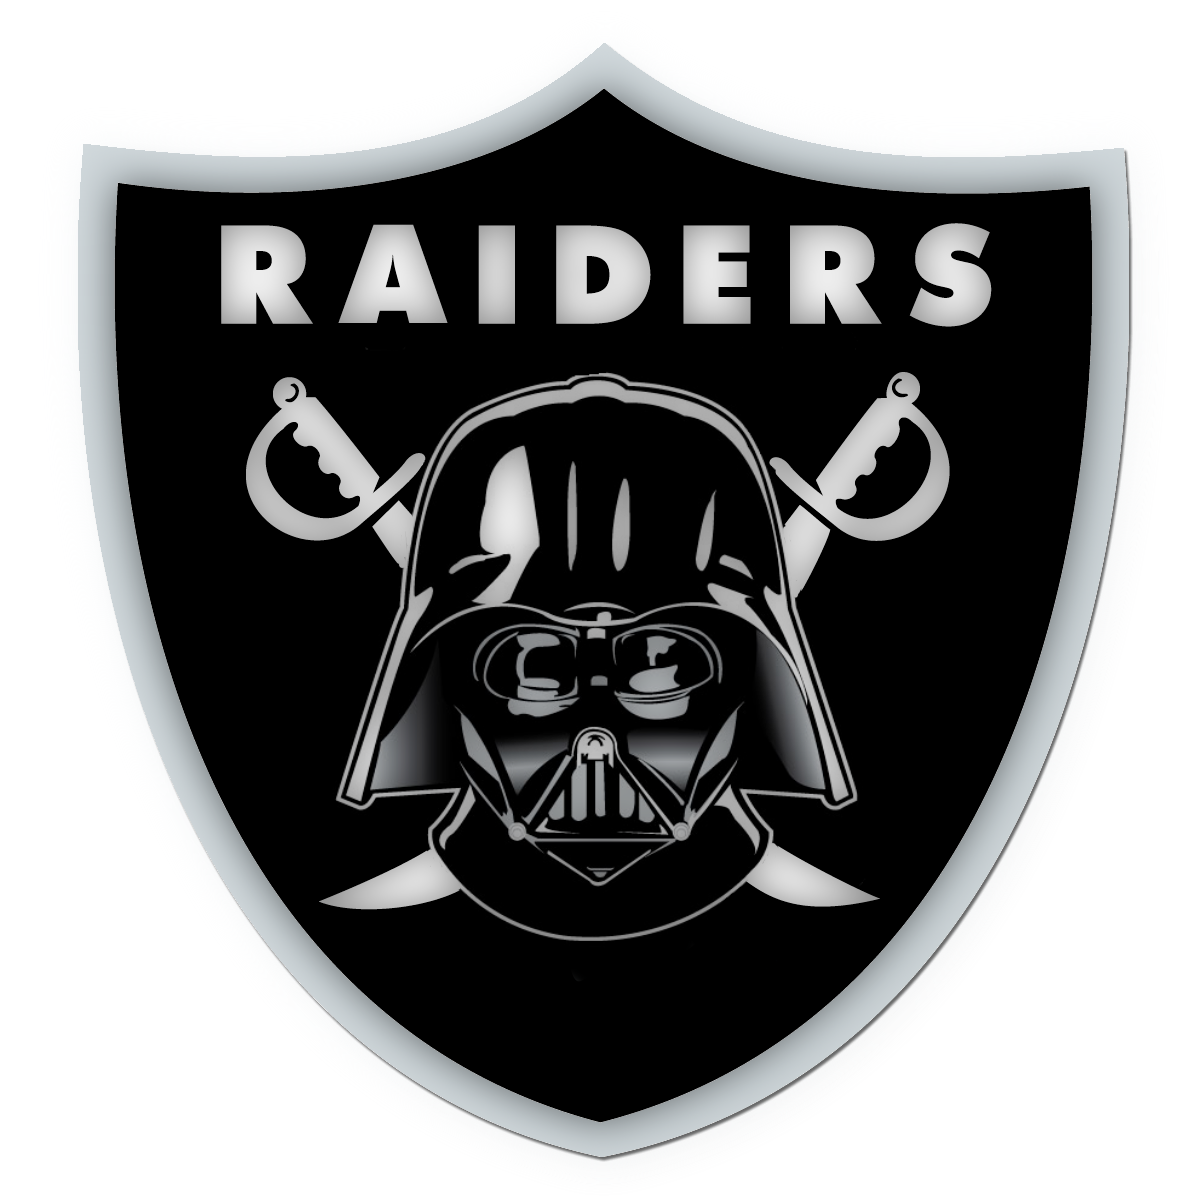 Oakland Raiders Logo (With images) Oakland raiders logo